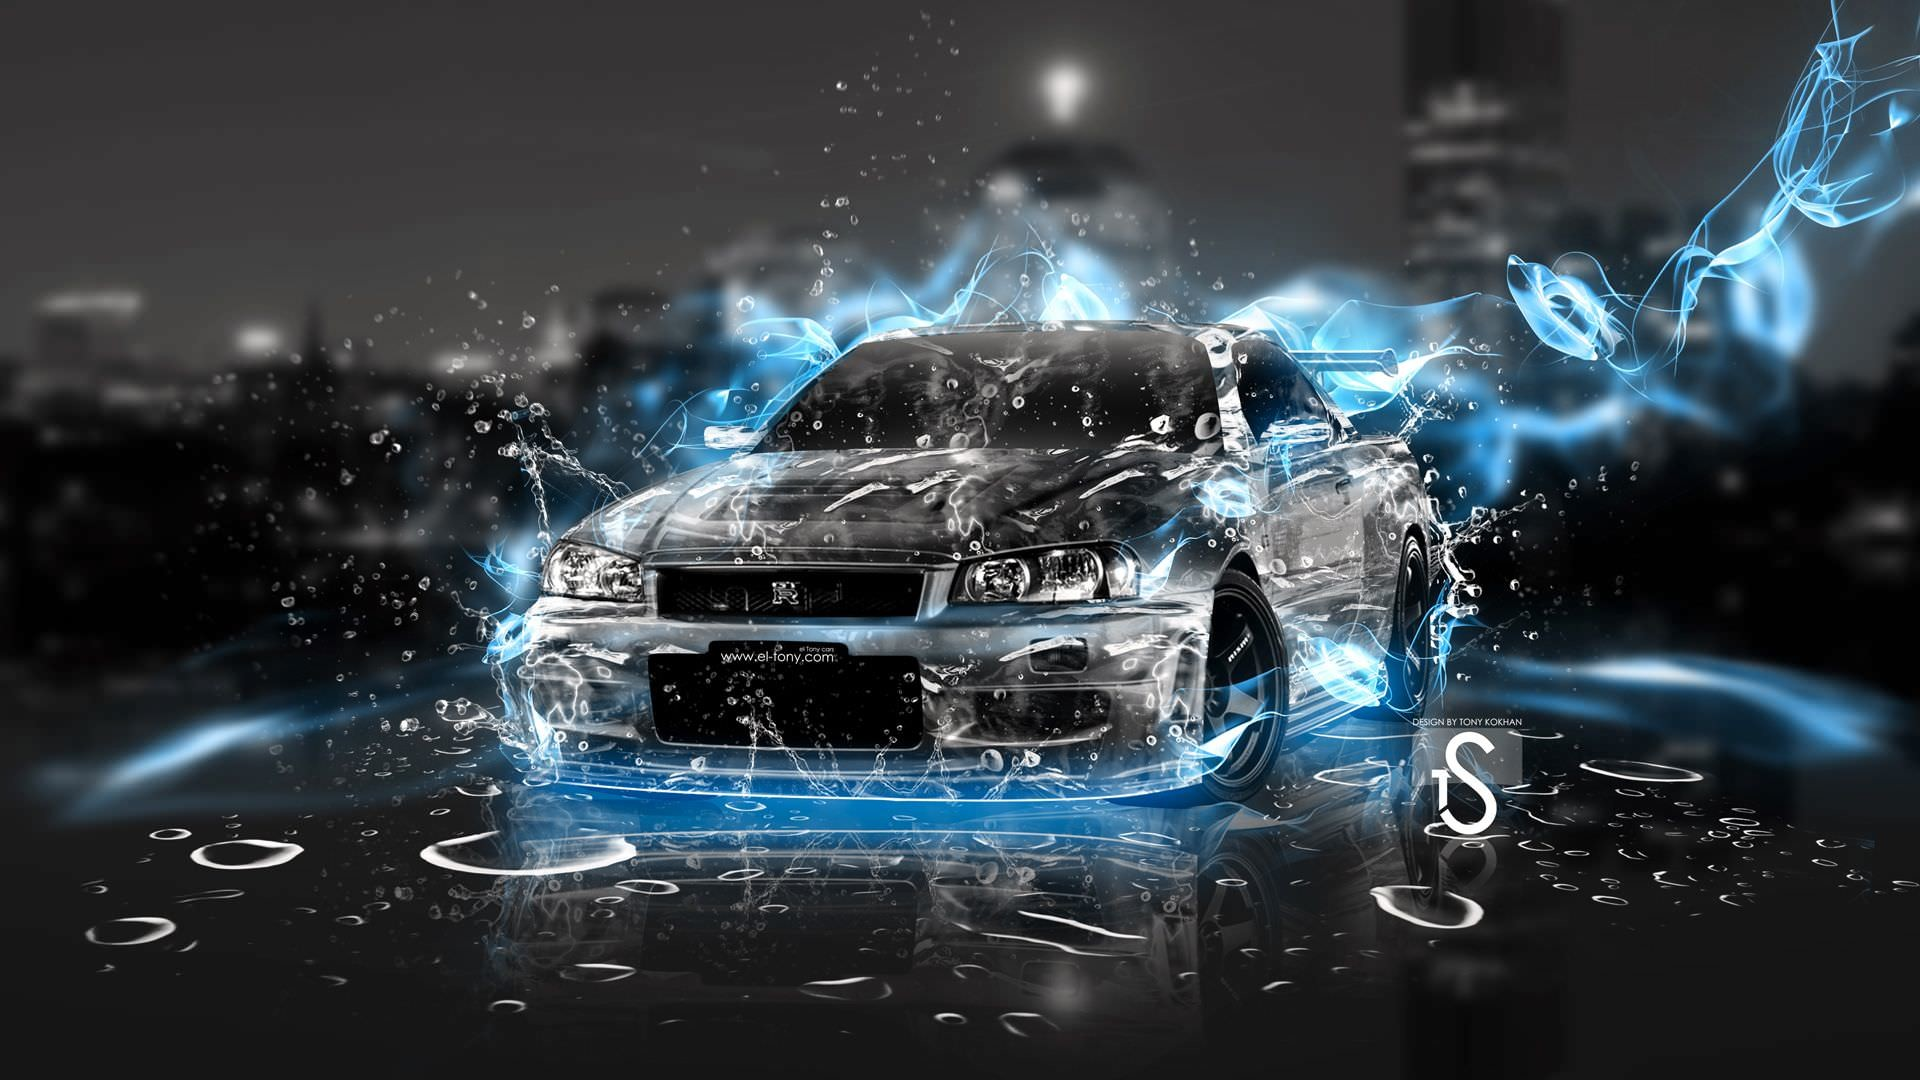 2560x1600 Cars Wallpapers Hd Full 1080p Desktop Backgrounds